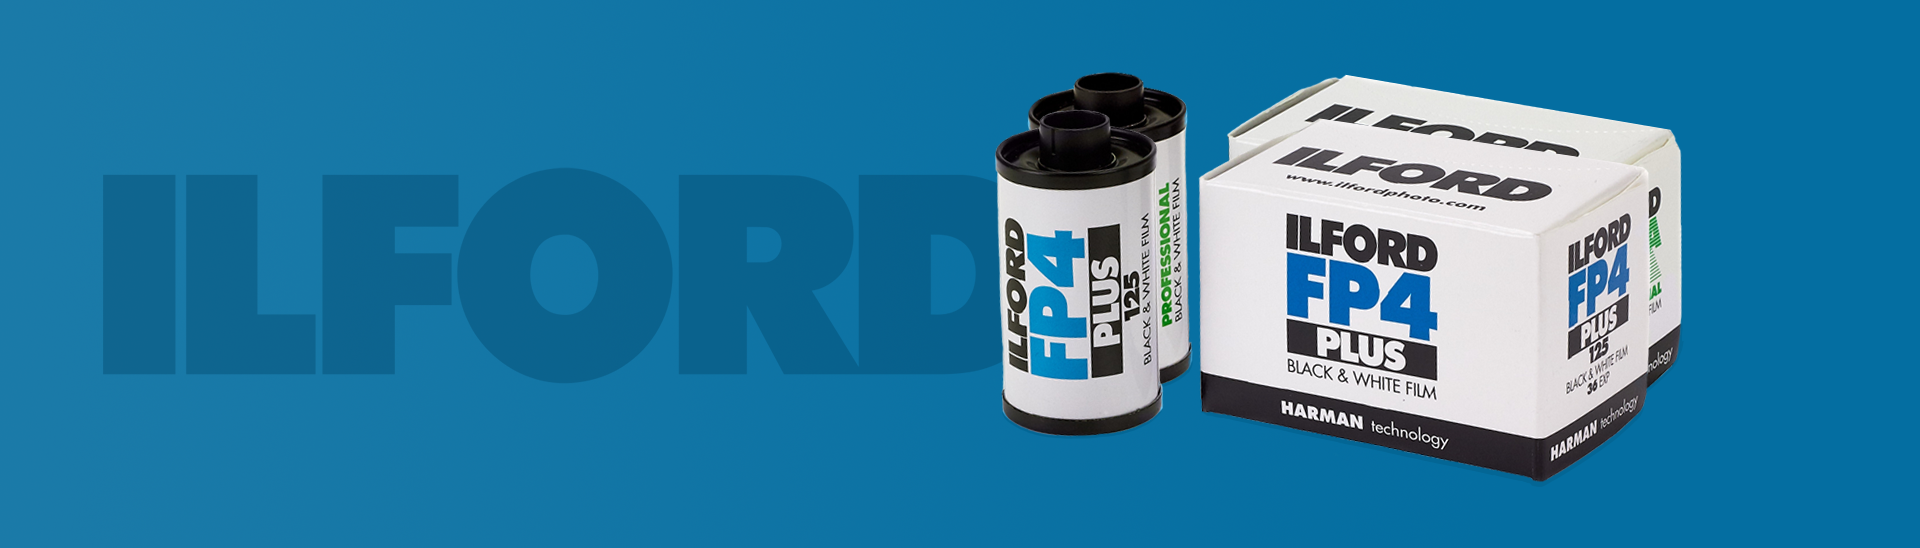 Ilford Black & White Film